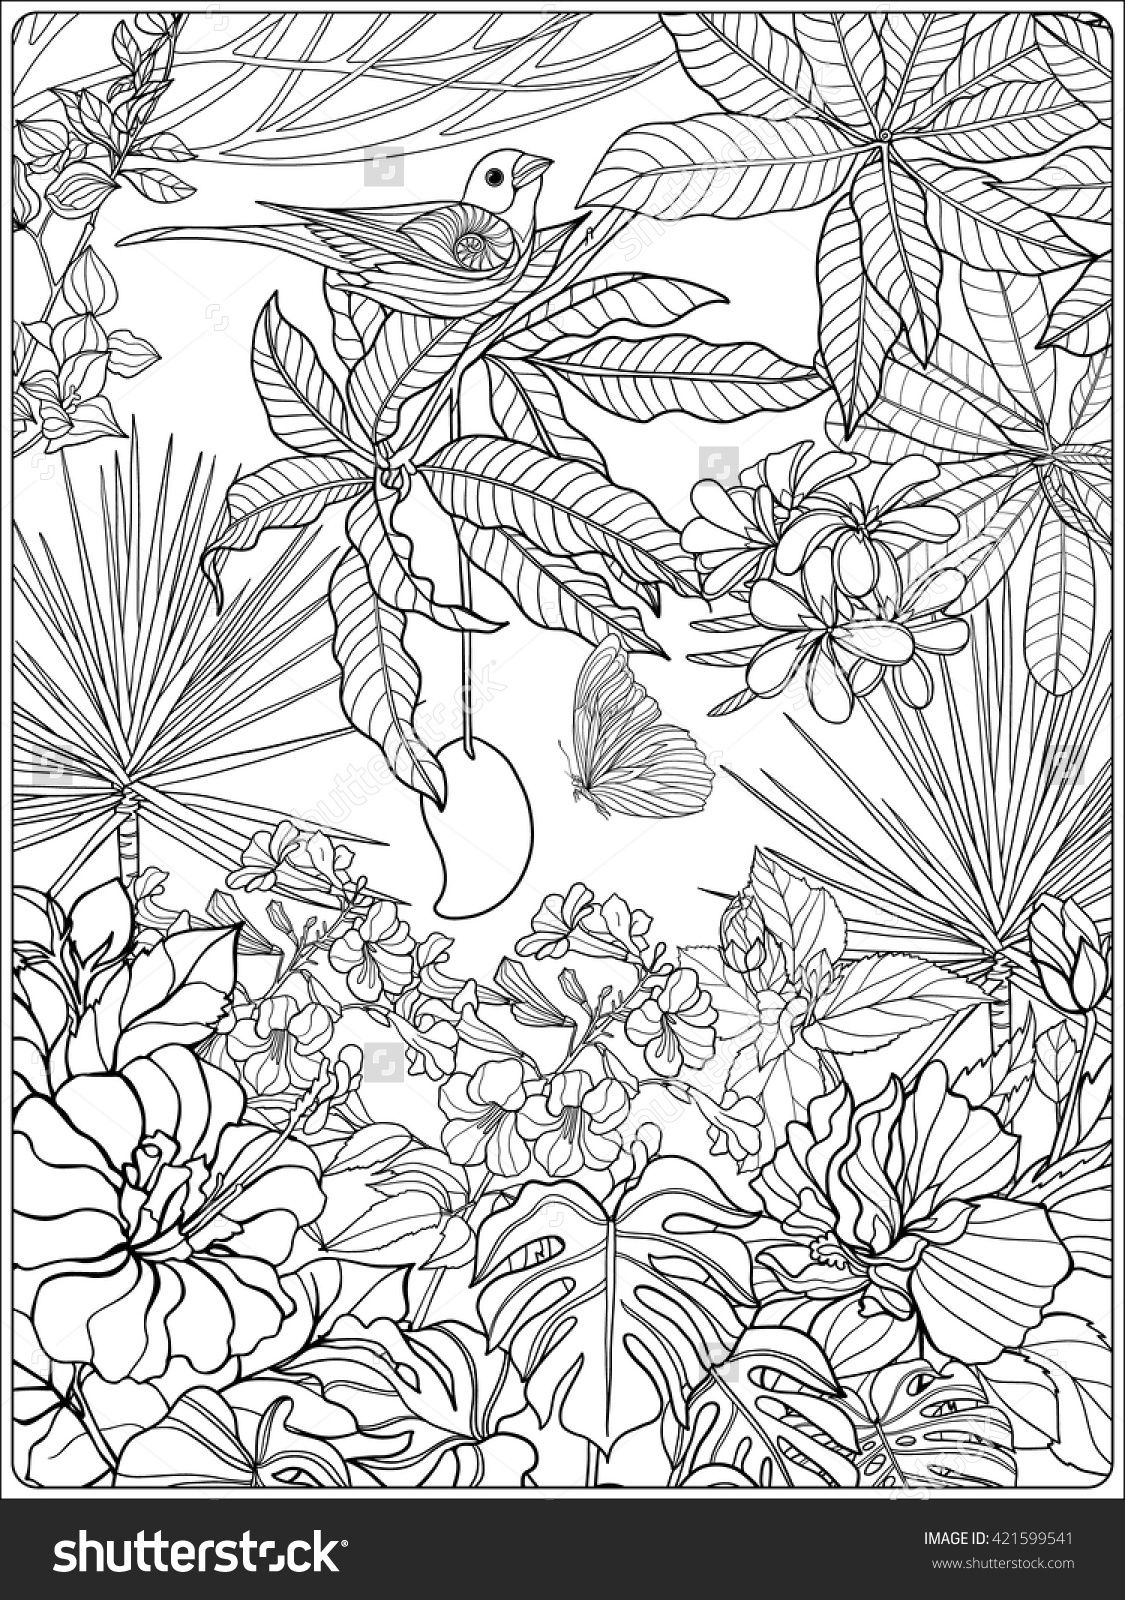 tropical coloring pages tropical birds and garden coloring page for adults Shutterstock  tropical coloring pages